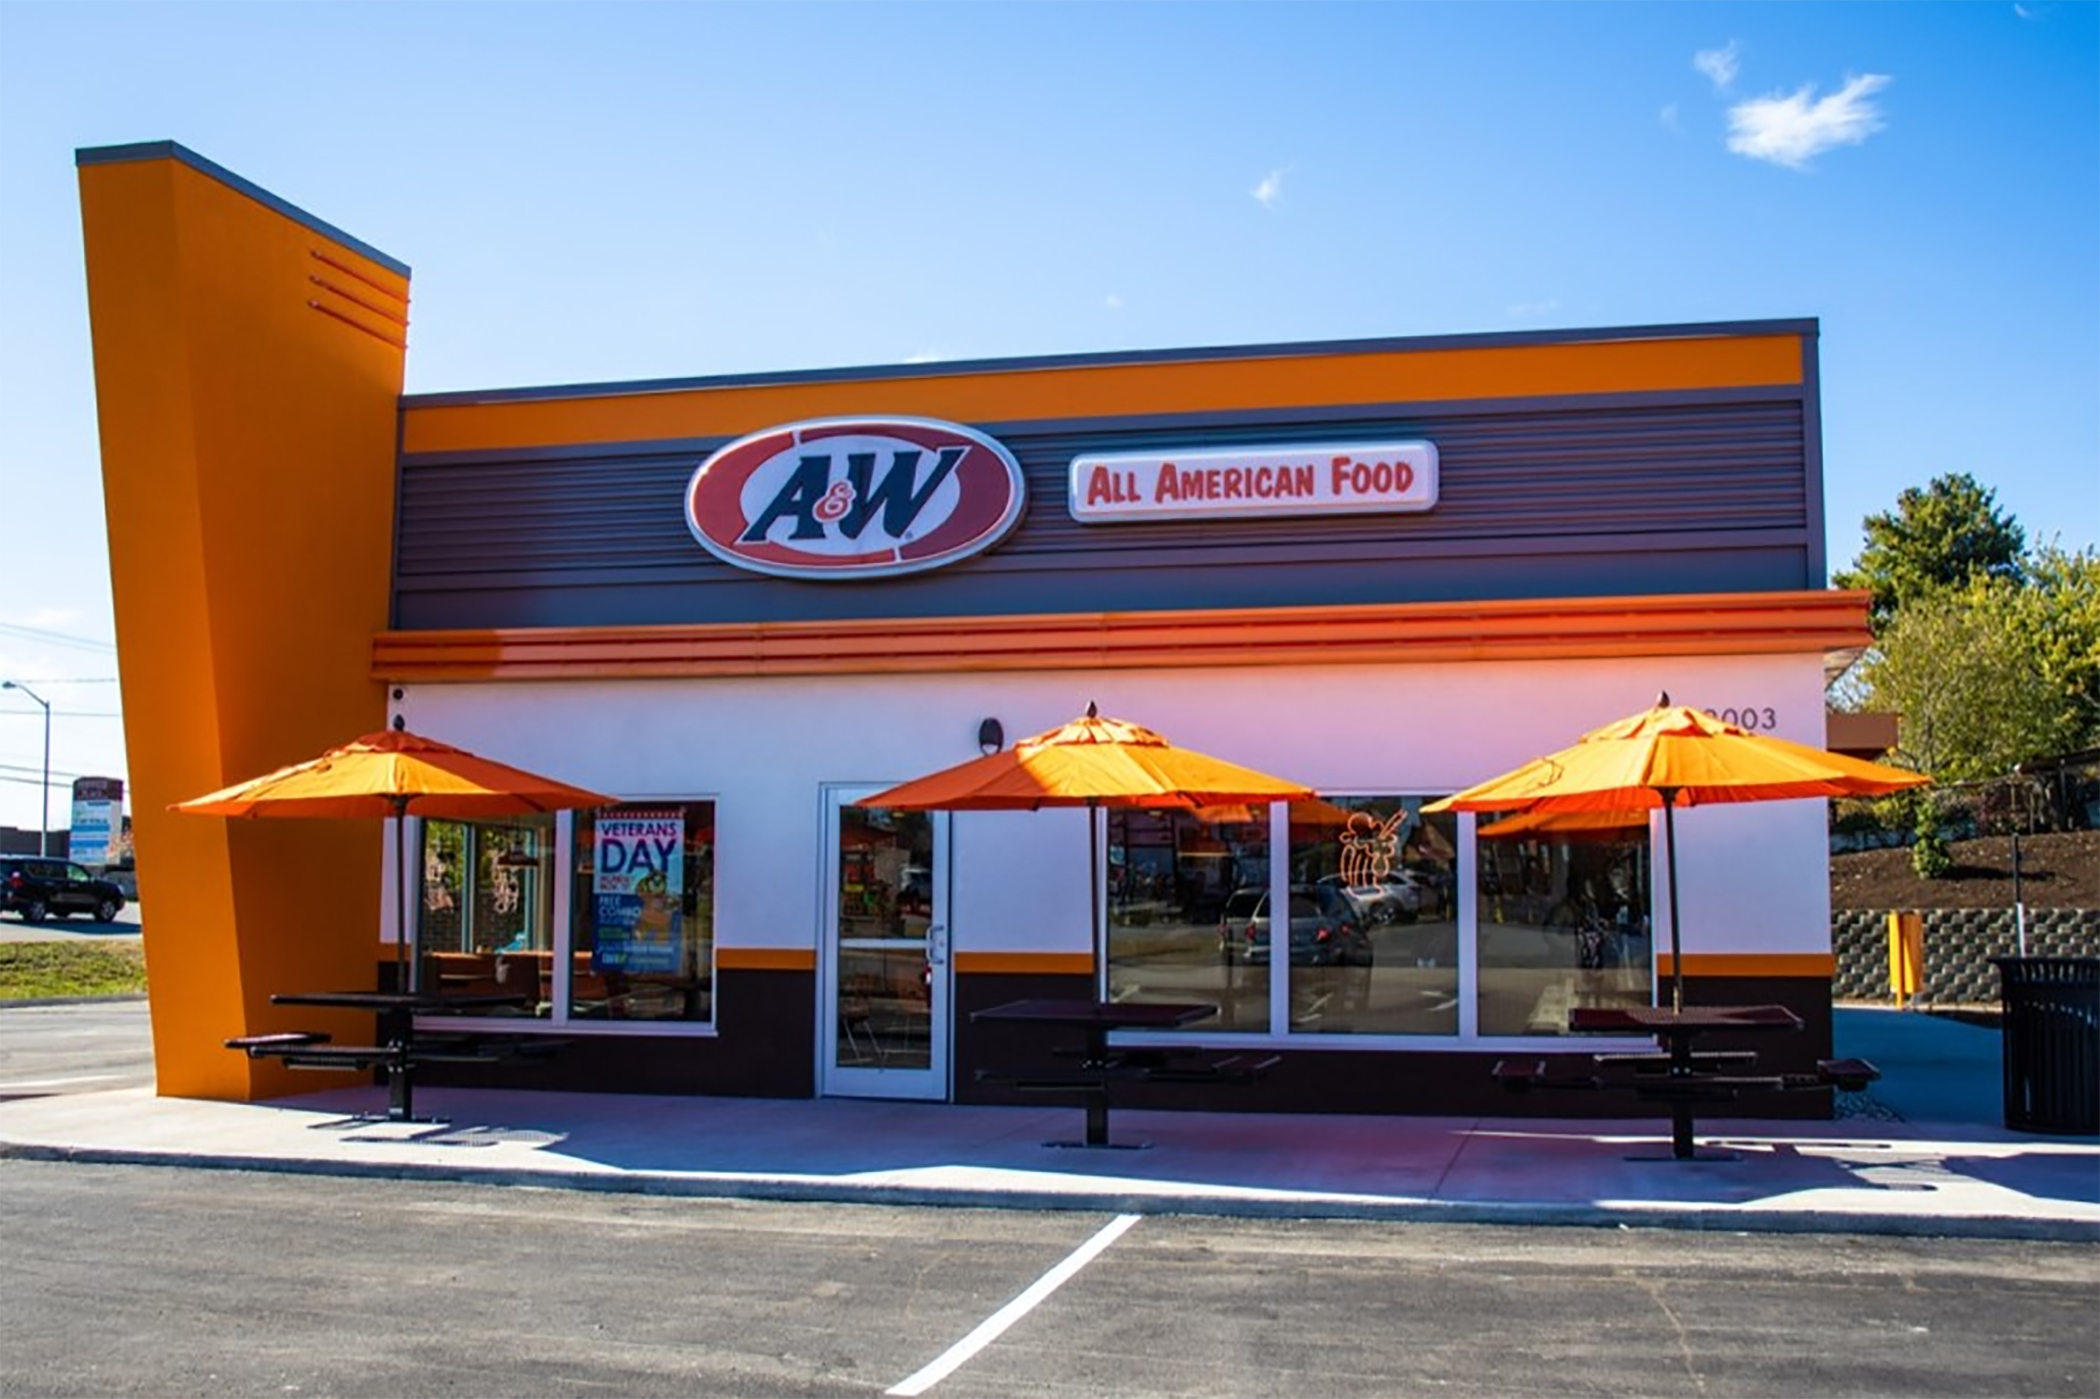 Century Old Root Beer Franchise Grows As Standalone Concept Costar